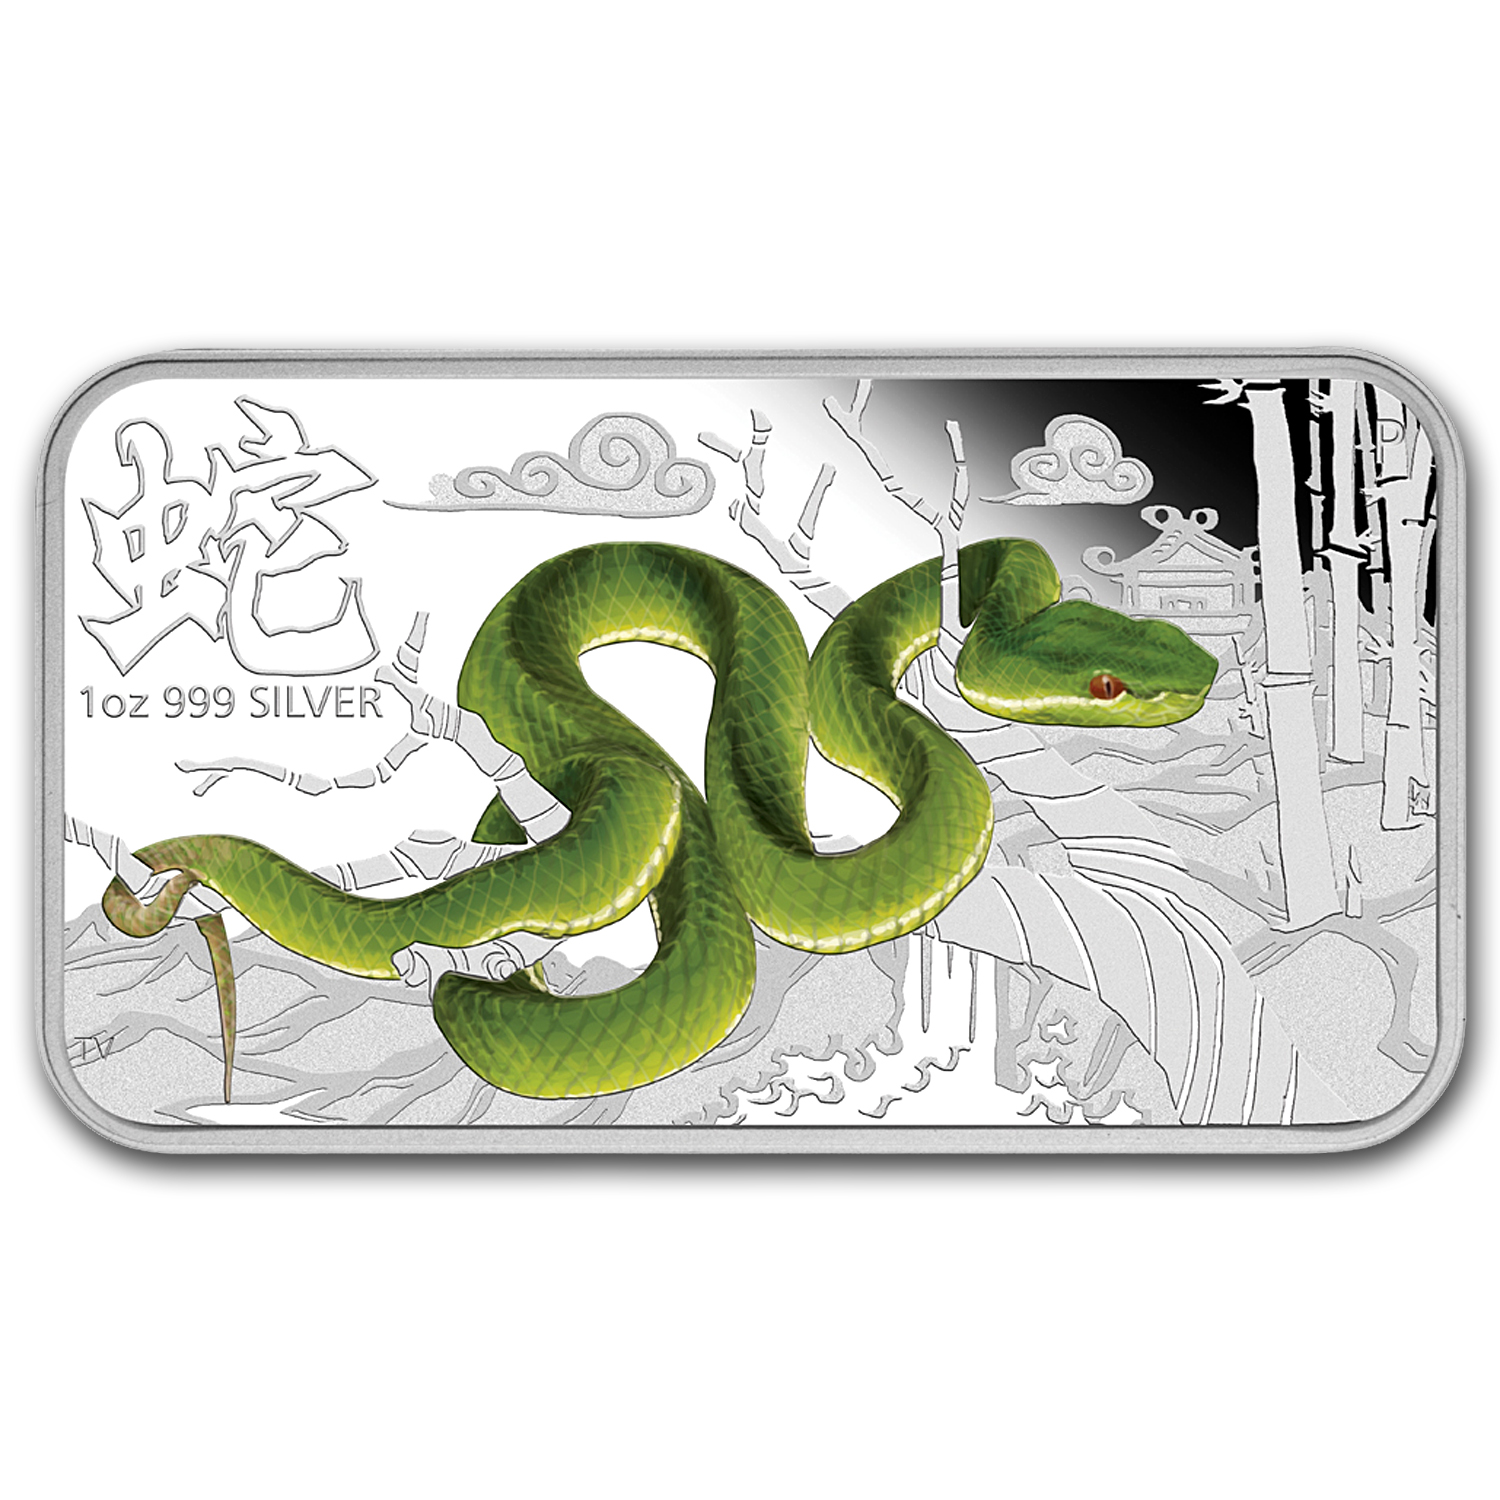 2013 Australia 4-Coin 1 oz Silver Snake Proof Set (Rectangles)